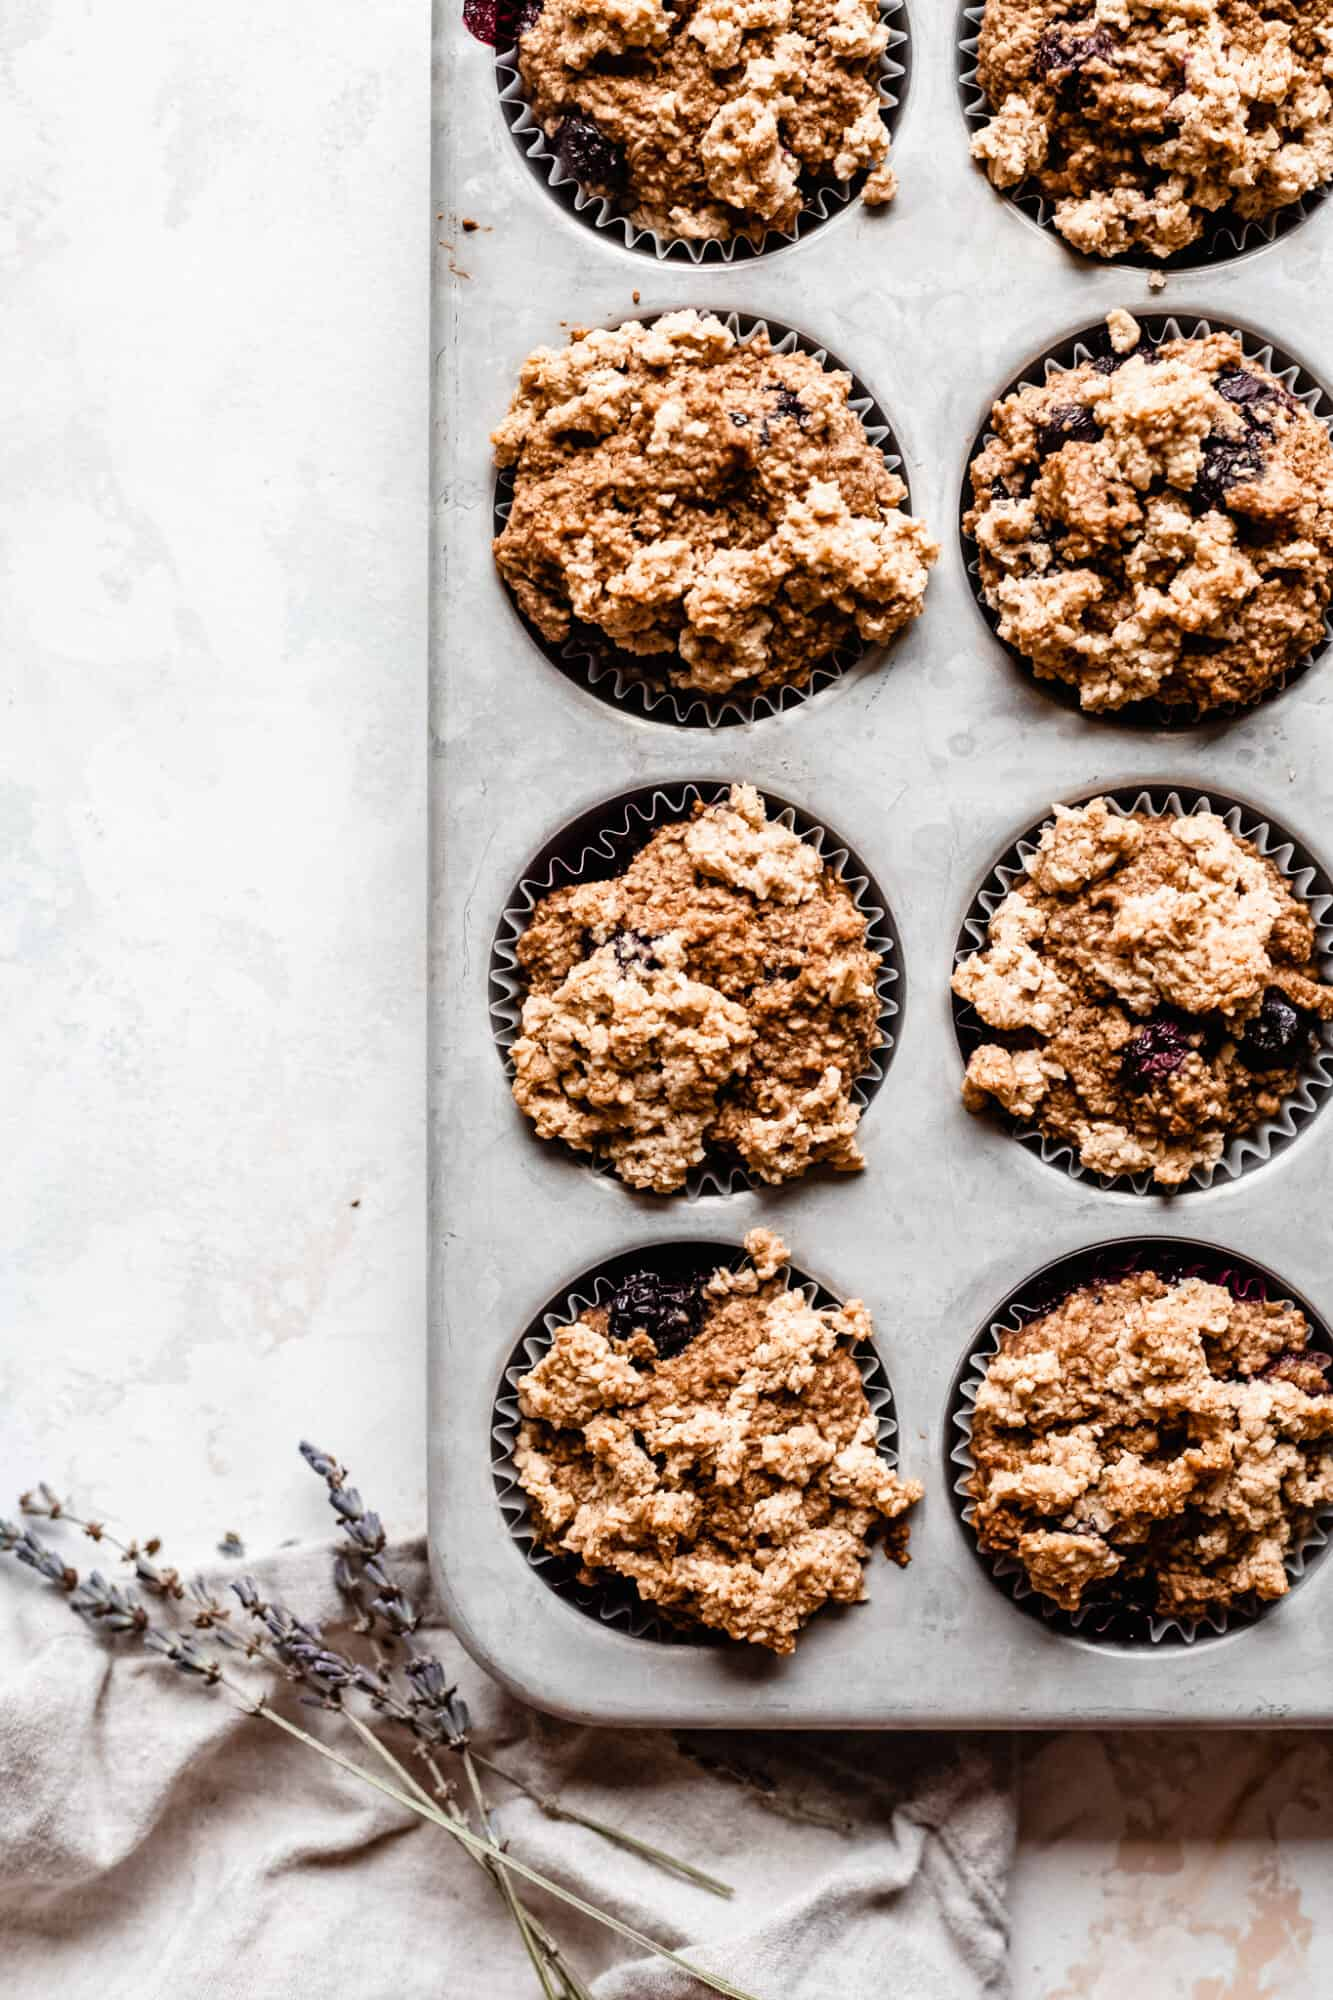 blueberry muffins baked